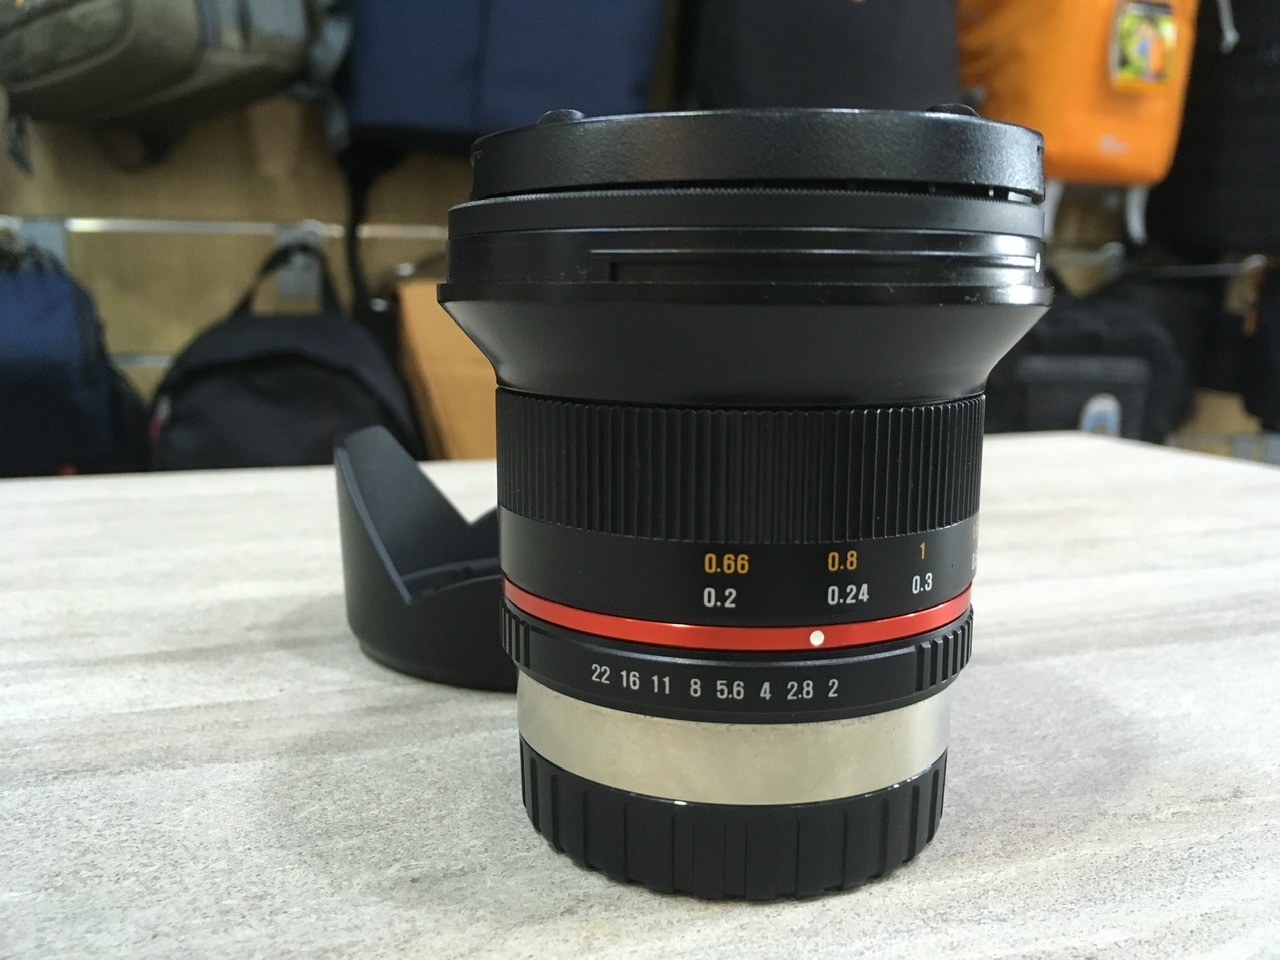 Used - Samyang 12mm F2 NCS CS Lens (Fujifilm)